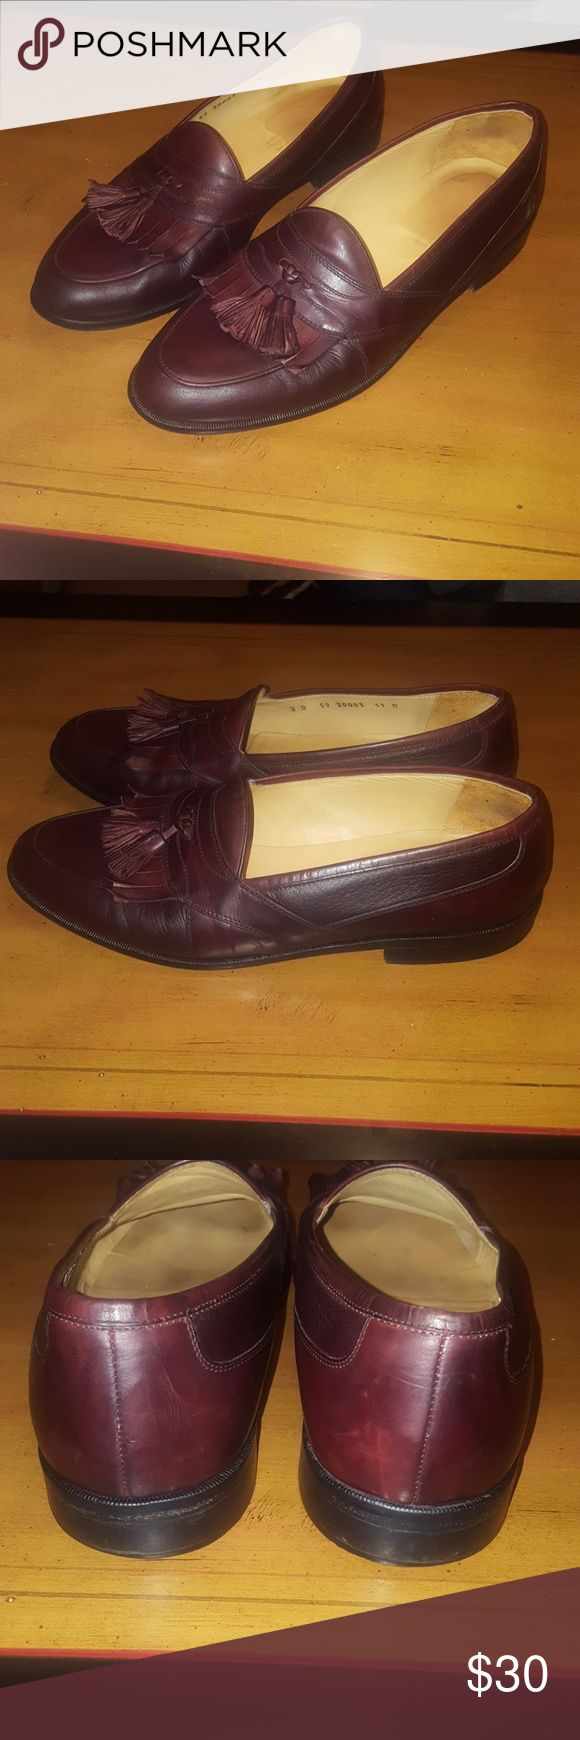 Johnston Murphy Cordovan Cellini Tassel Loafers 11 Only $15. Price is firm. Johnston Murphy Cordovan Cellini Tassel Loafers Size 11 M. This pair of shoes are in excellent condition. These shoes are made in Italy and they are Johnston Murphy's best. Johnston & Murphy Shoes Loafers & Slip-Ons